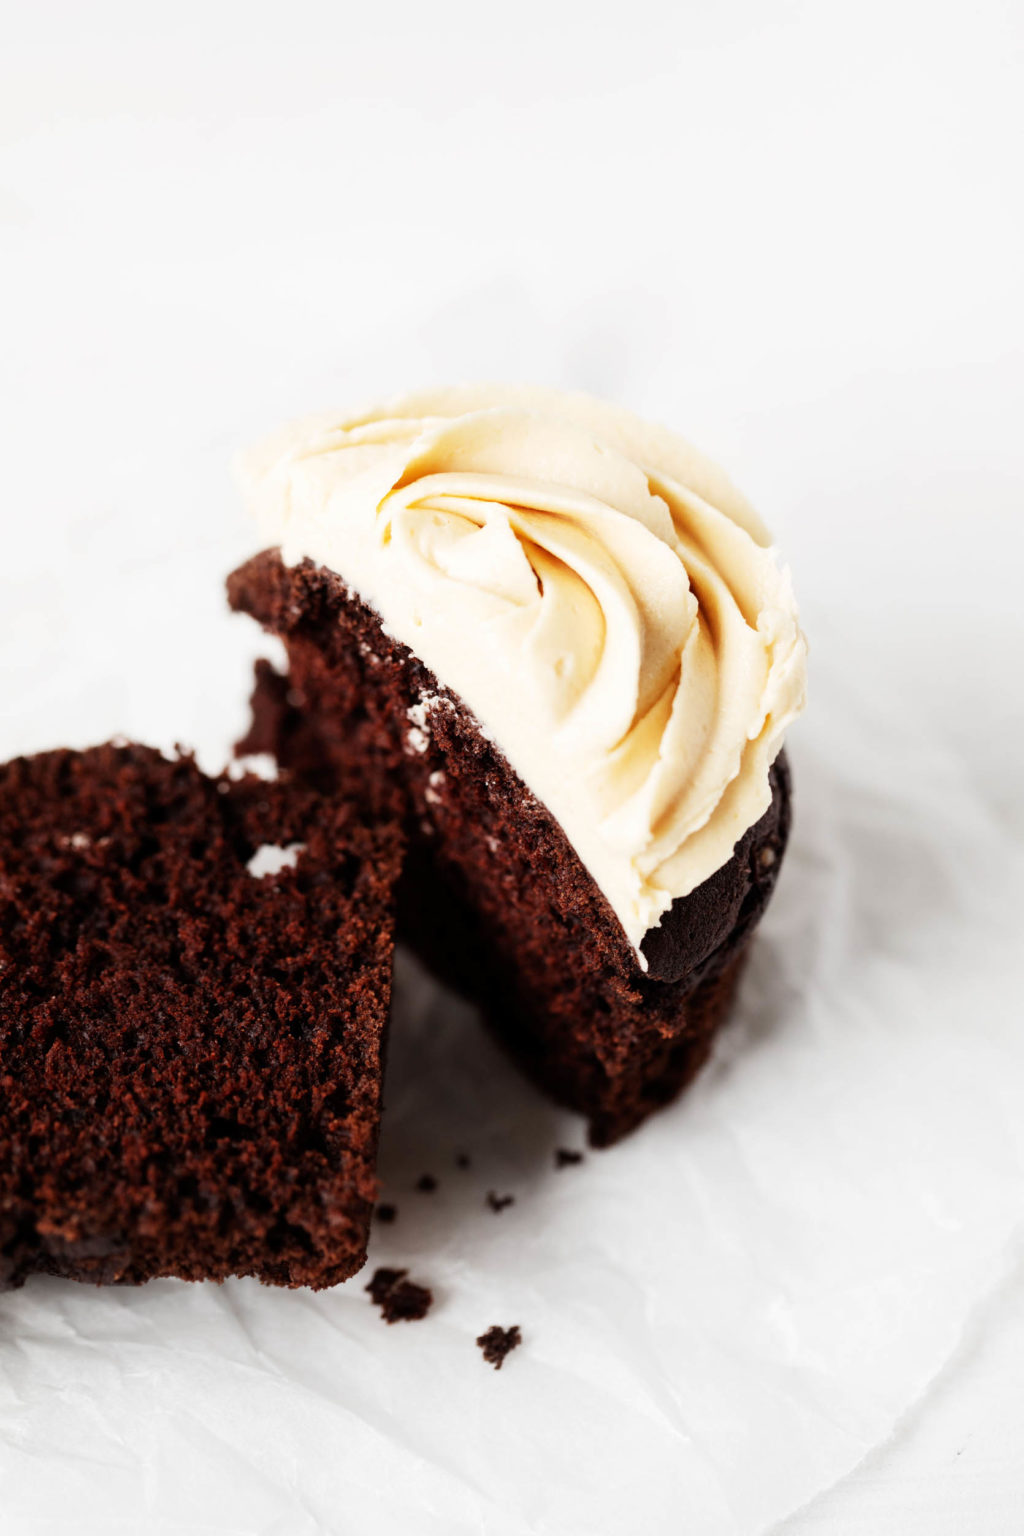 A chocolate peanut butter cupcake has been sliced neatly in half. It's resting on a small dessert plate.